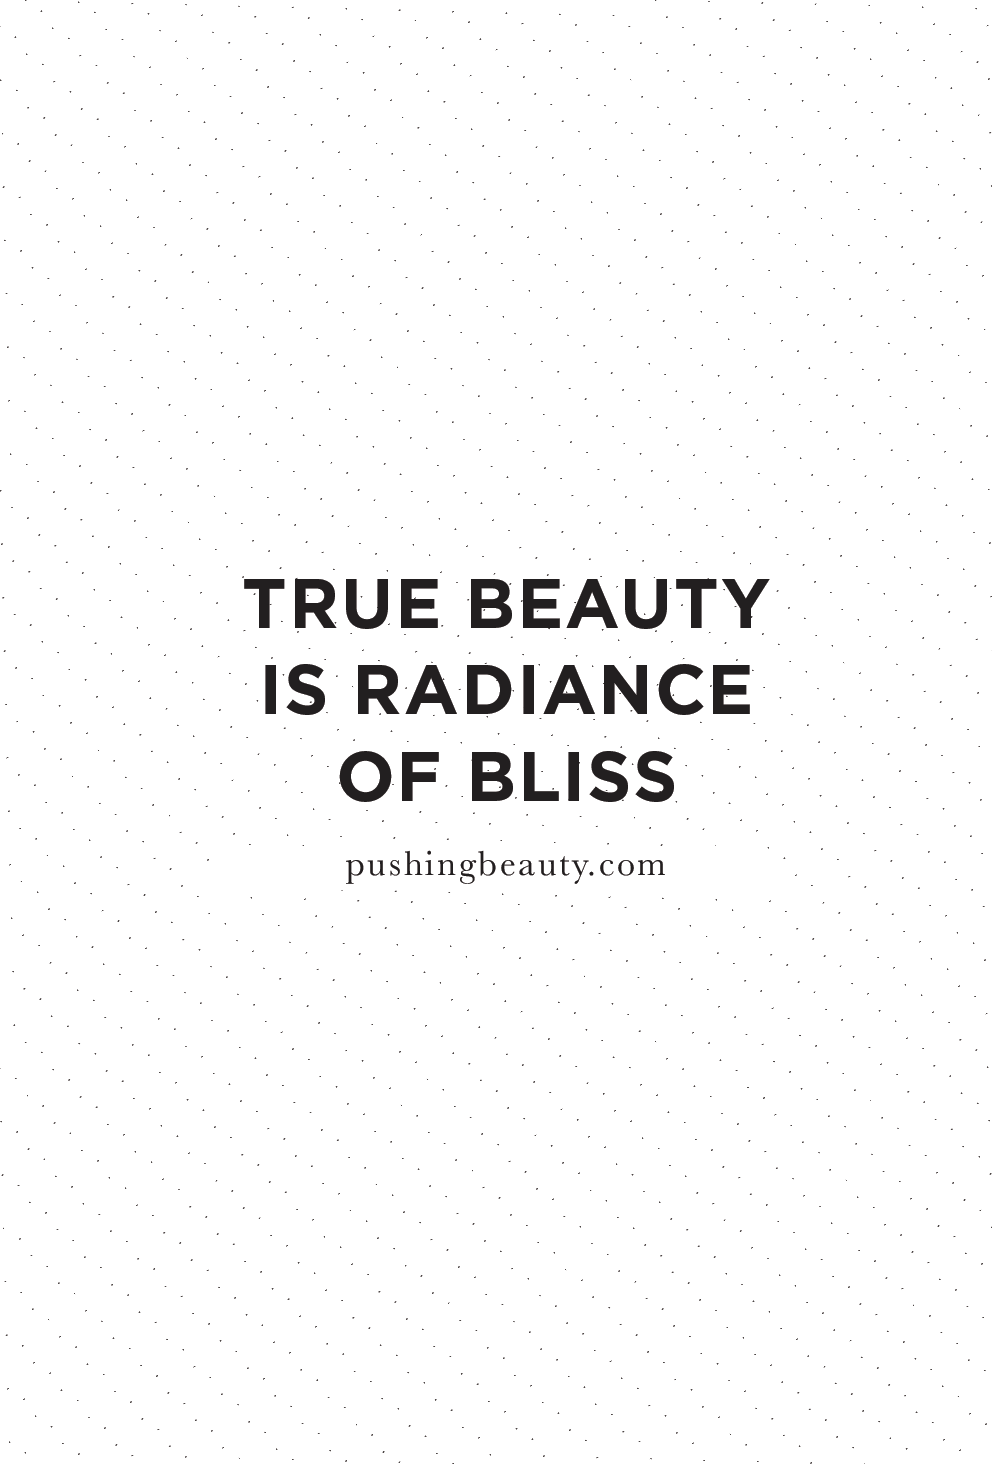 True beauty is radiance of bliss | Pushing Beauty